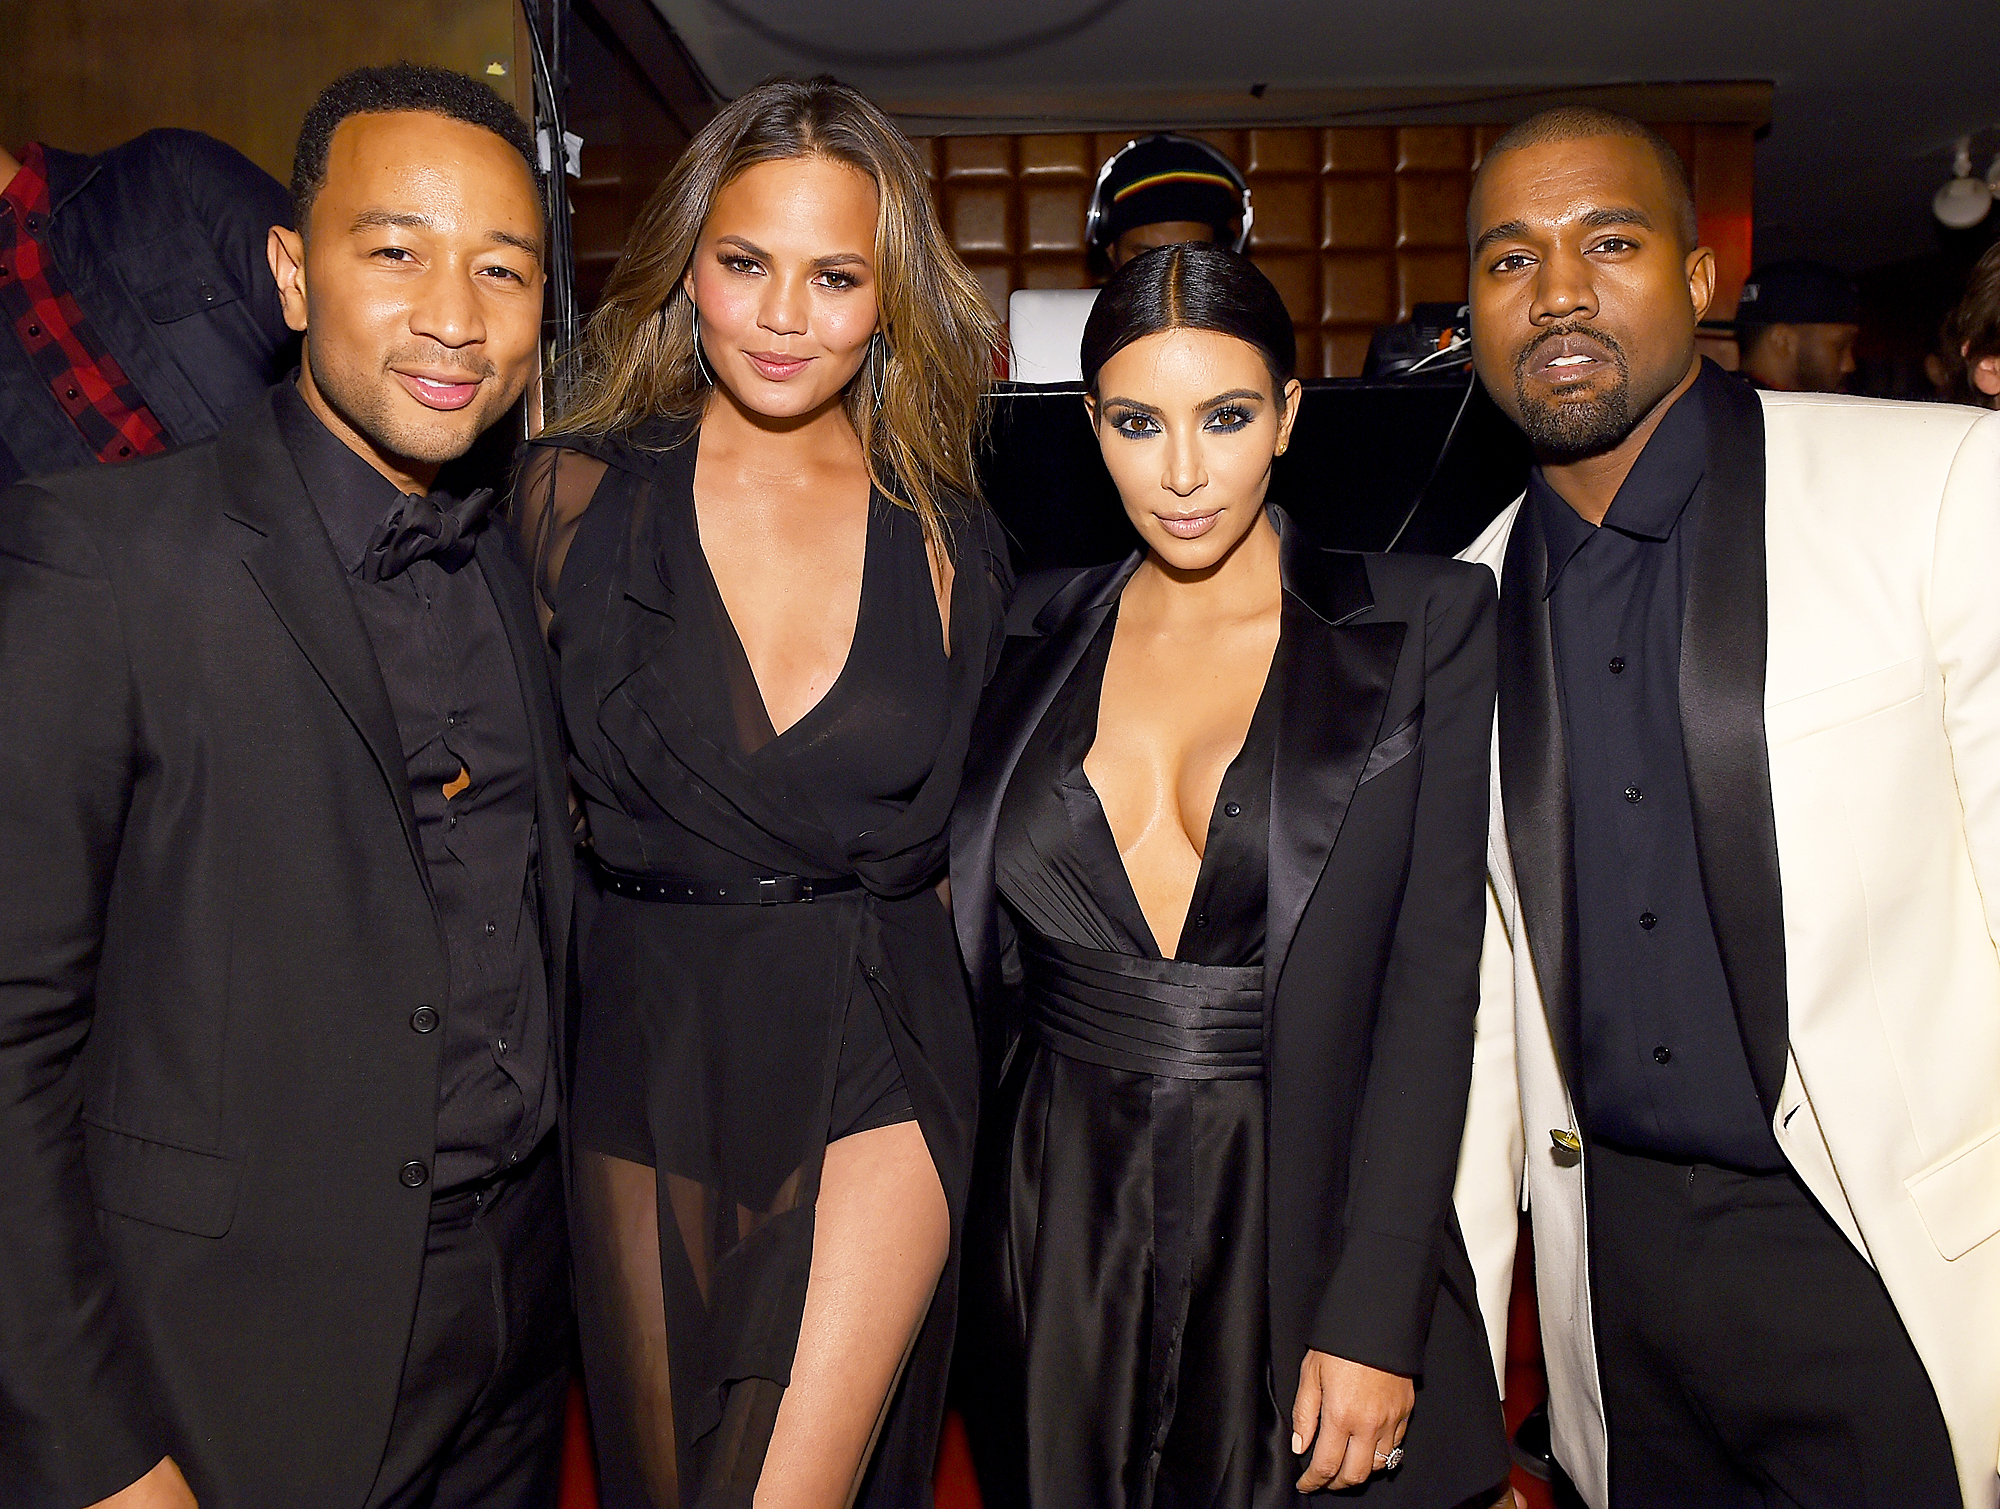 John Legend, Chrissy Teigen, Kim Kardashian and Kanye West